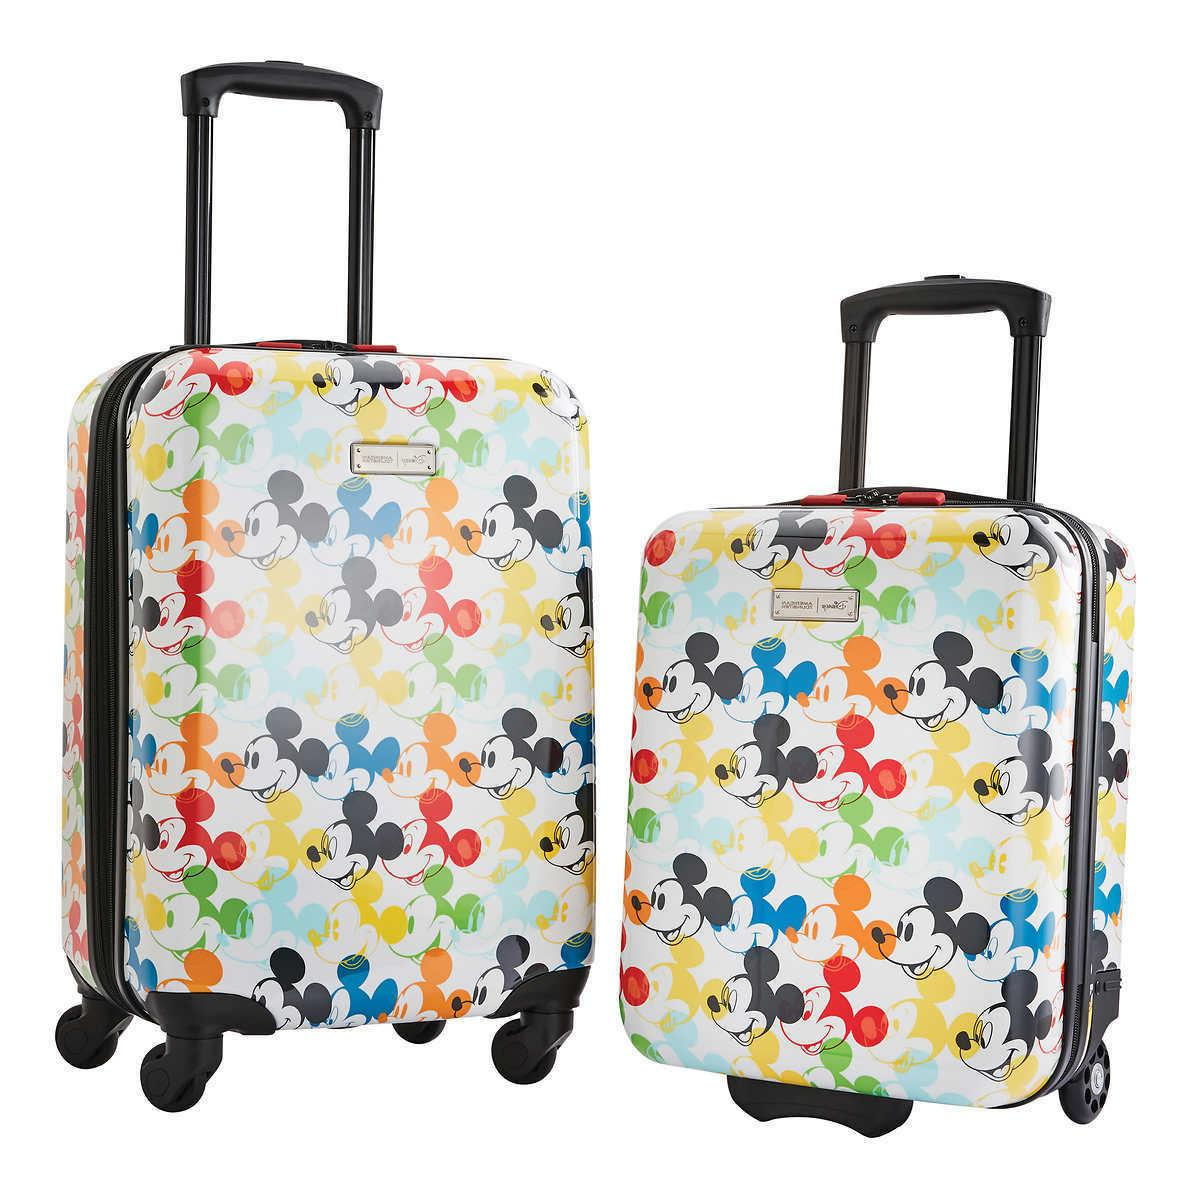 american tourister 2 piece hardside carry on